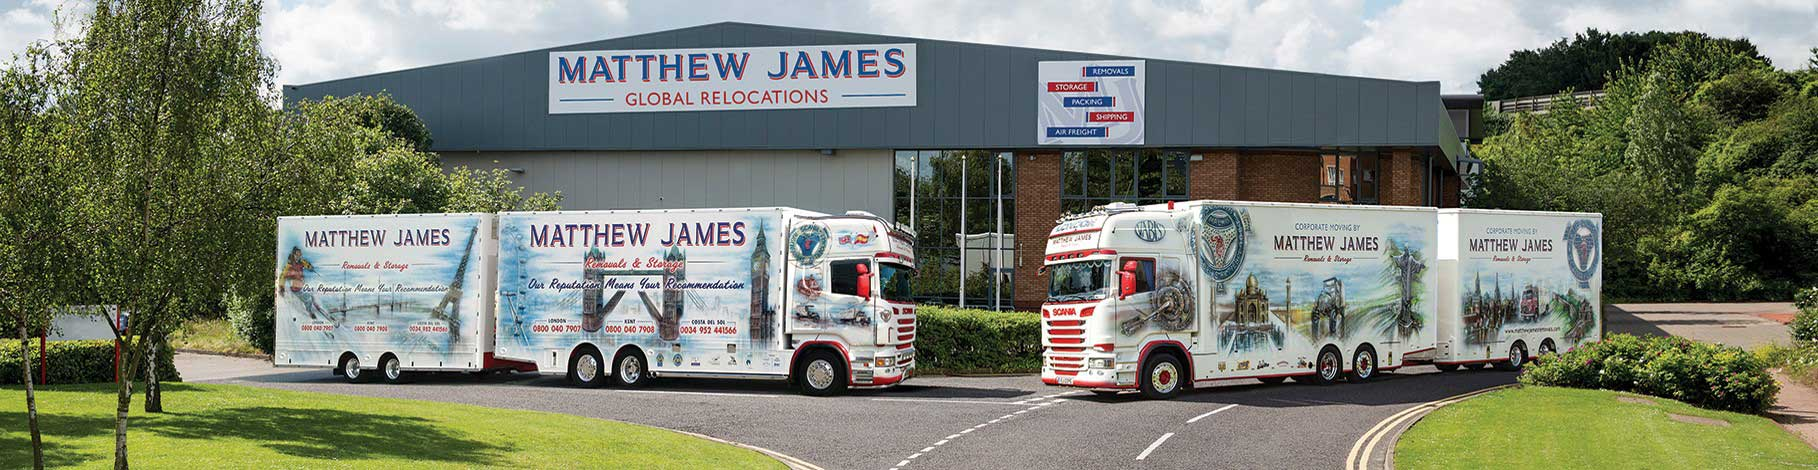 Matthew James - Global Relocations